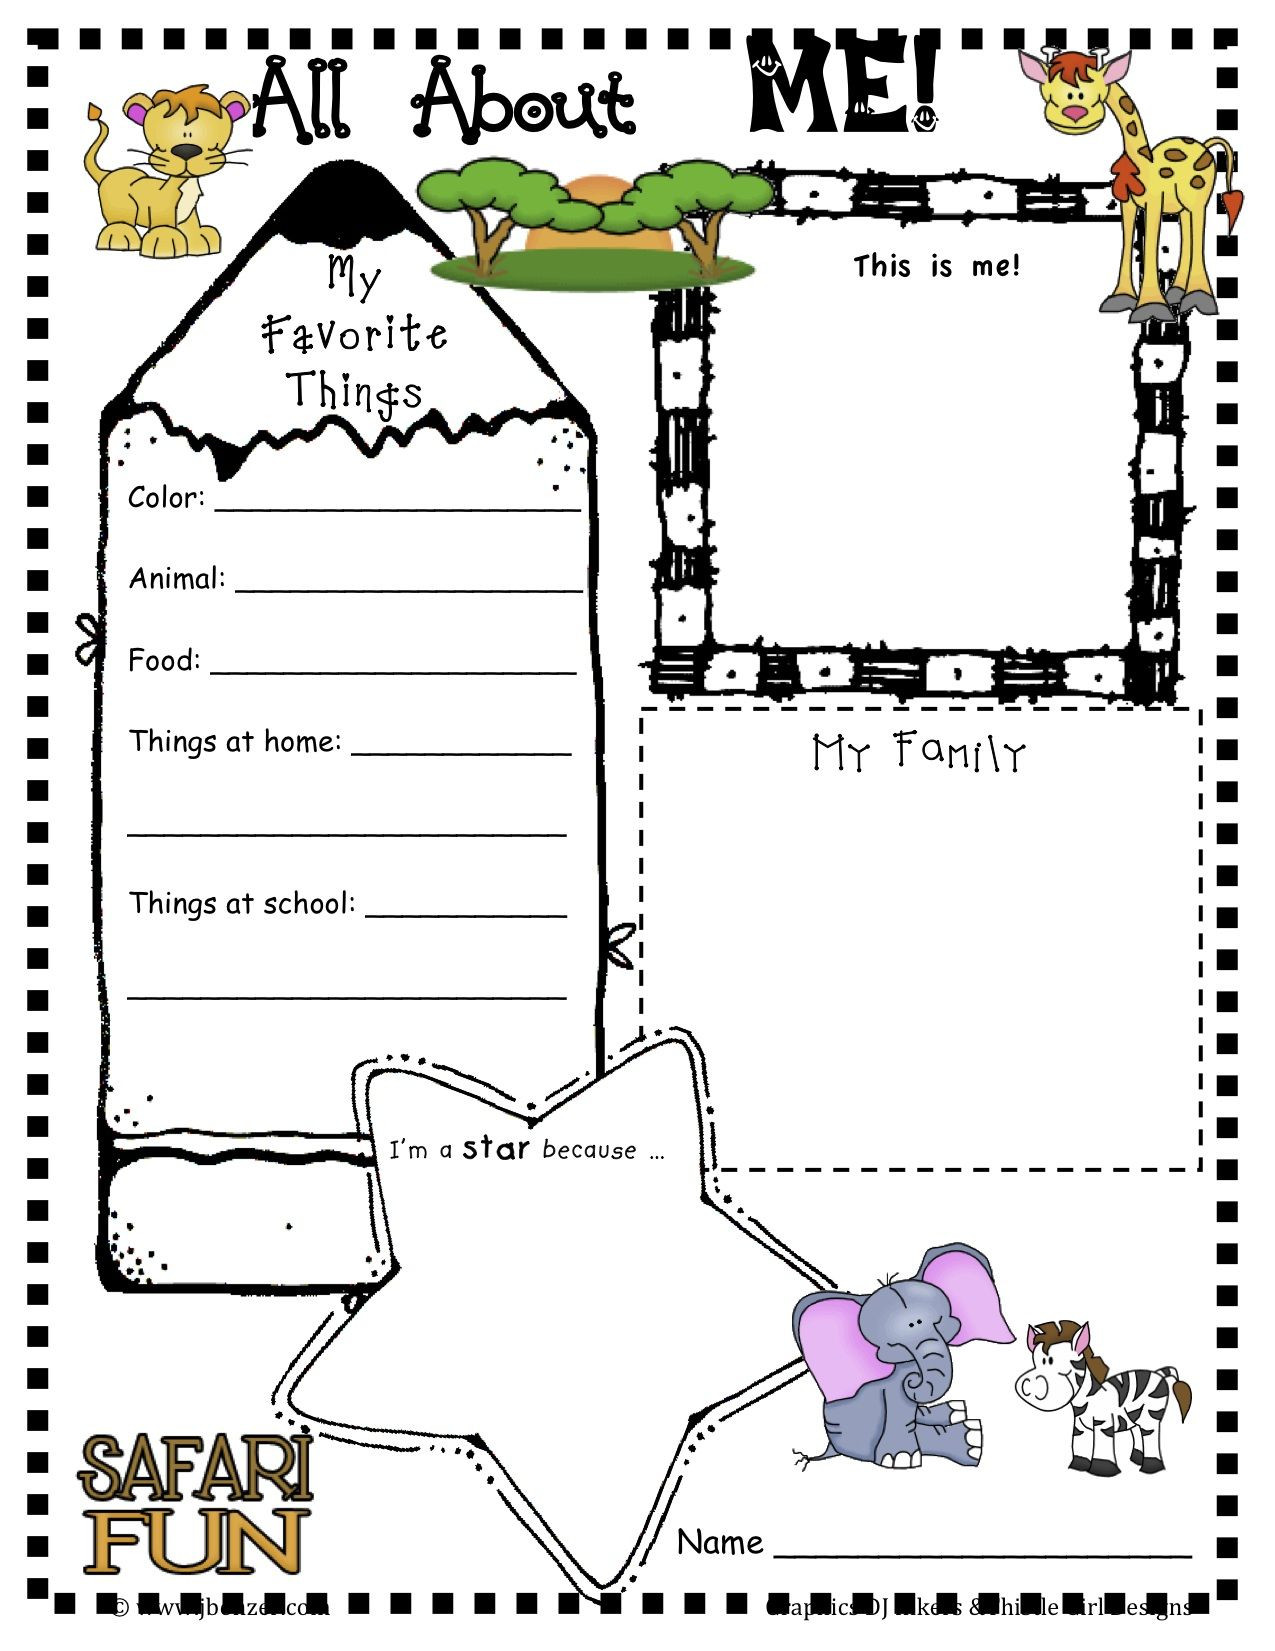 30 All About Me Printable Worksheet